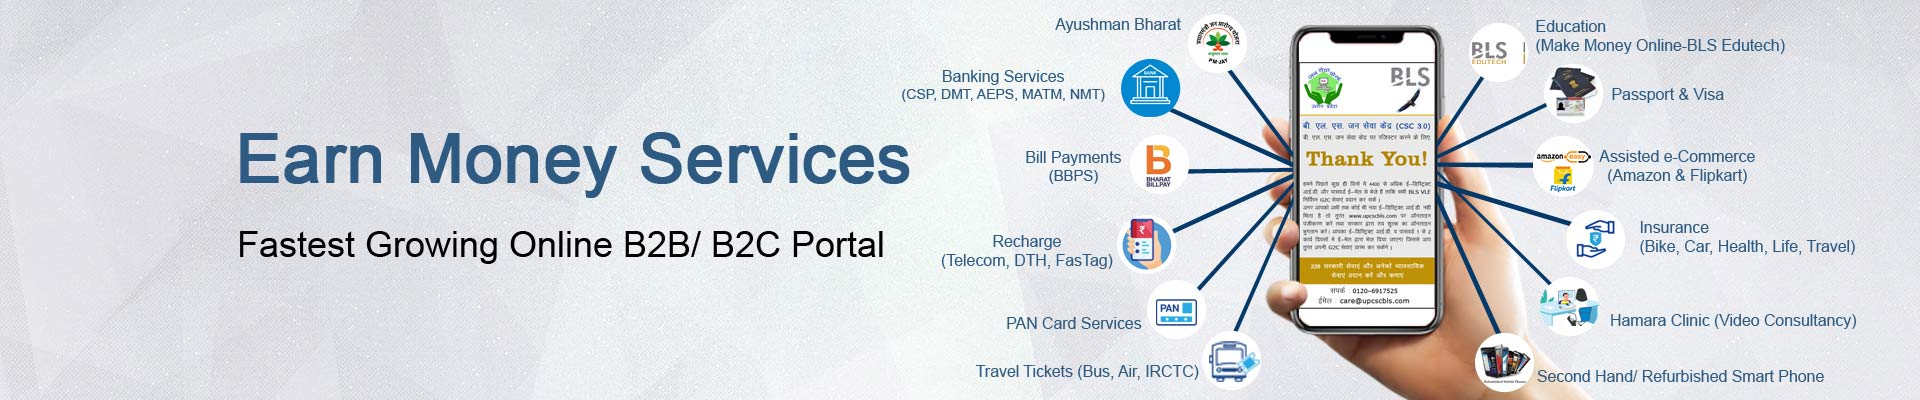 Government to Citizen Services (G2C) and Business to Customer Services (B2C)